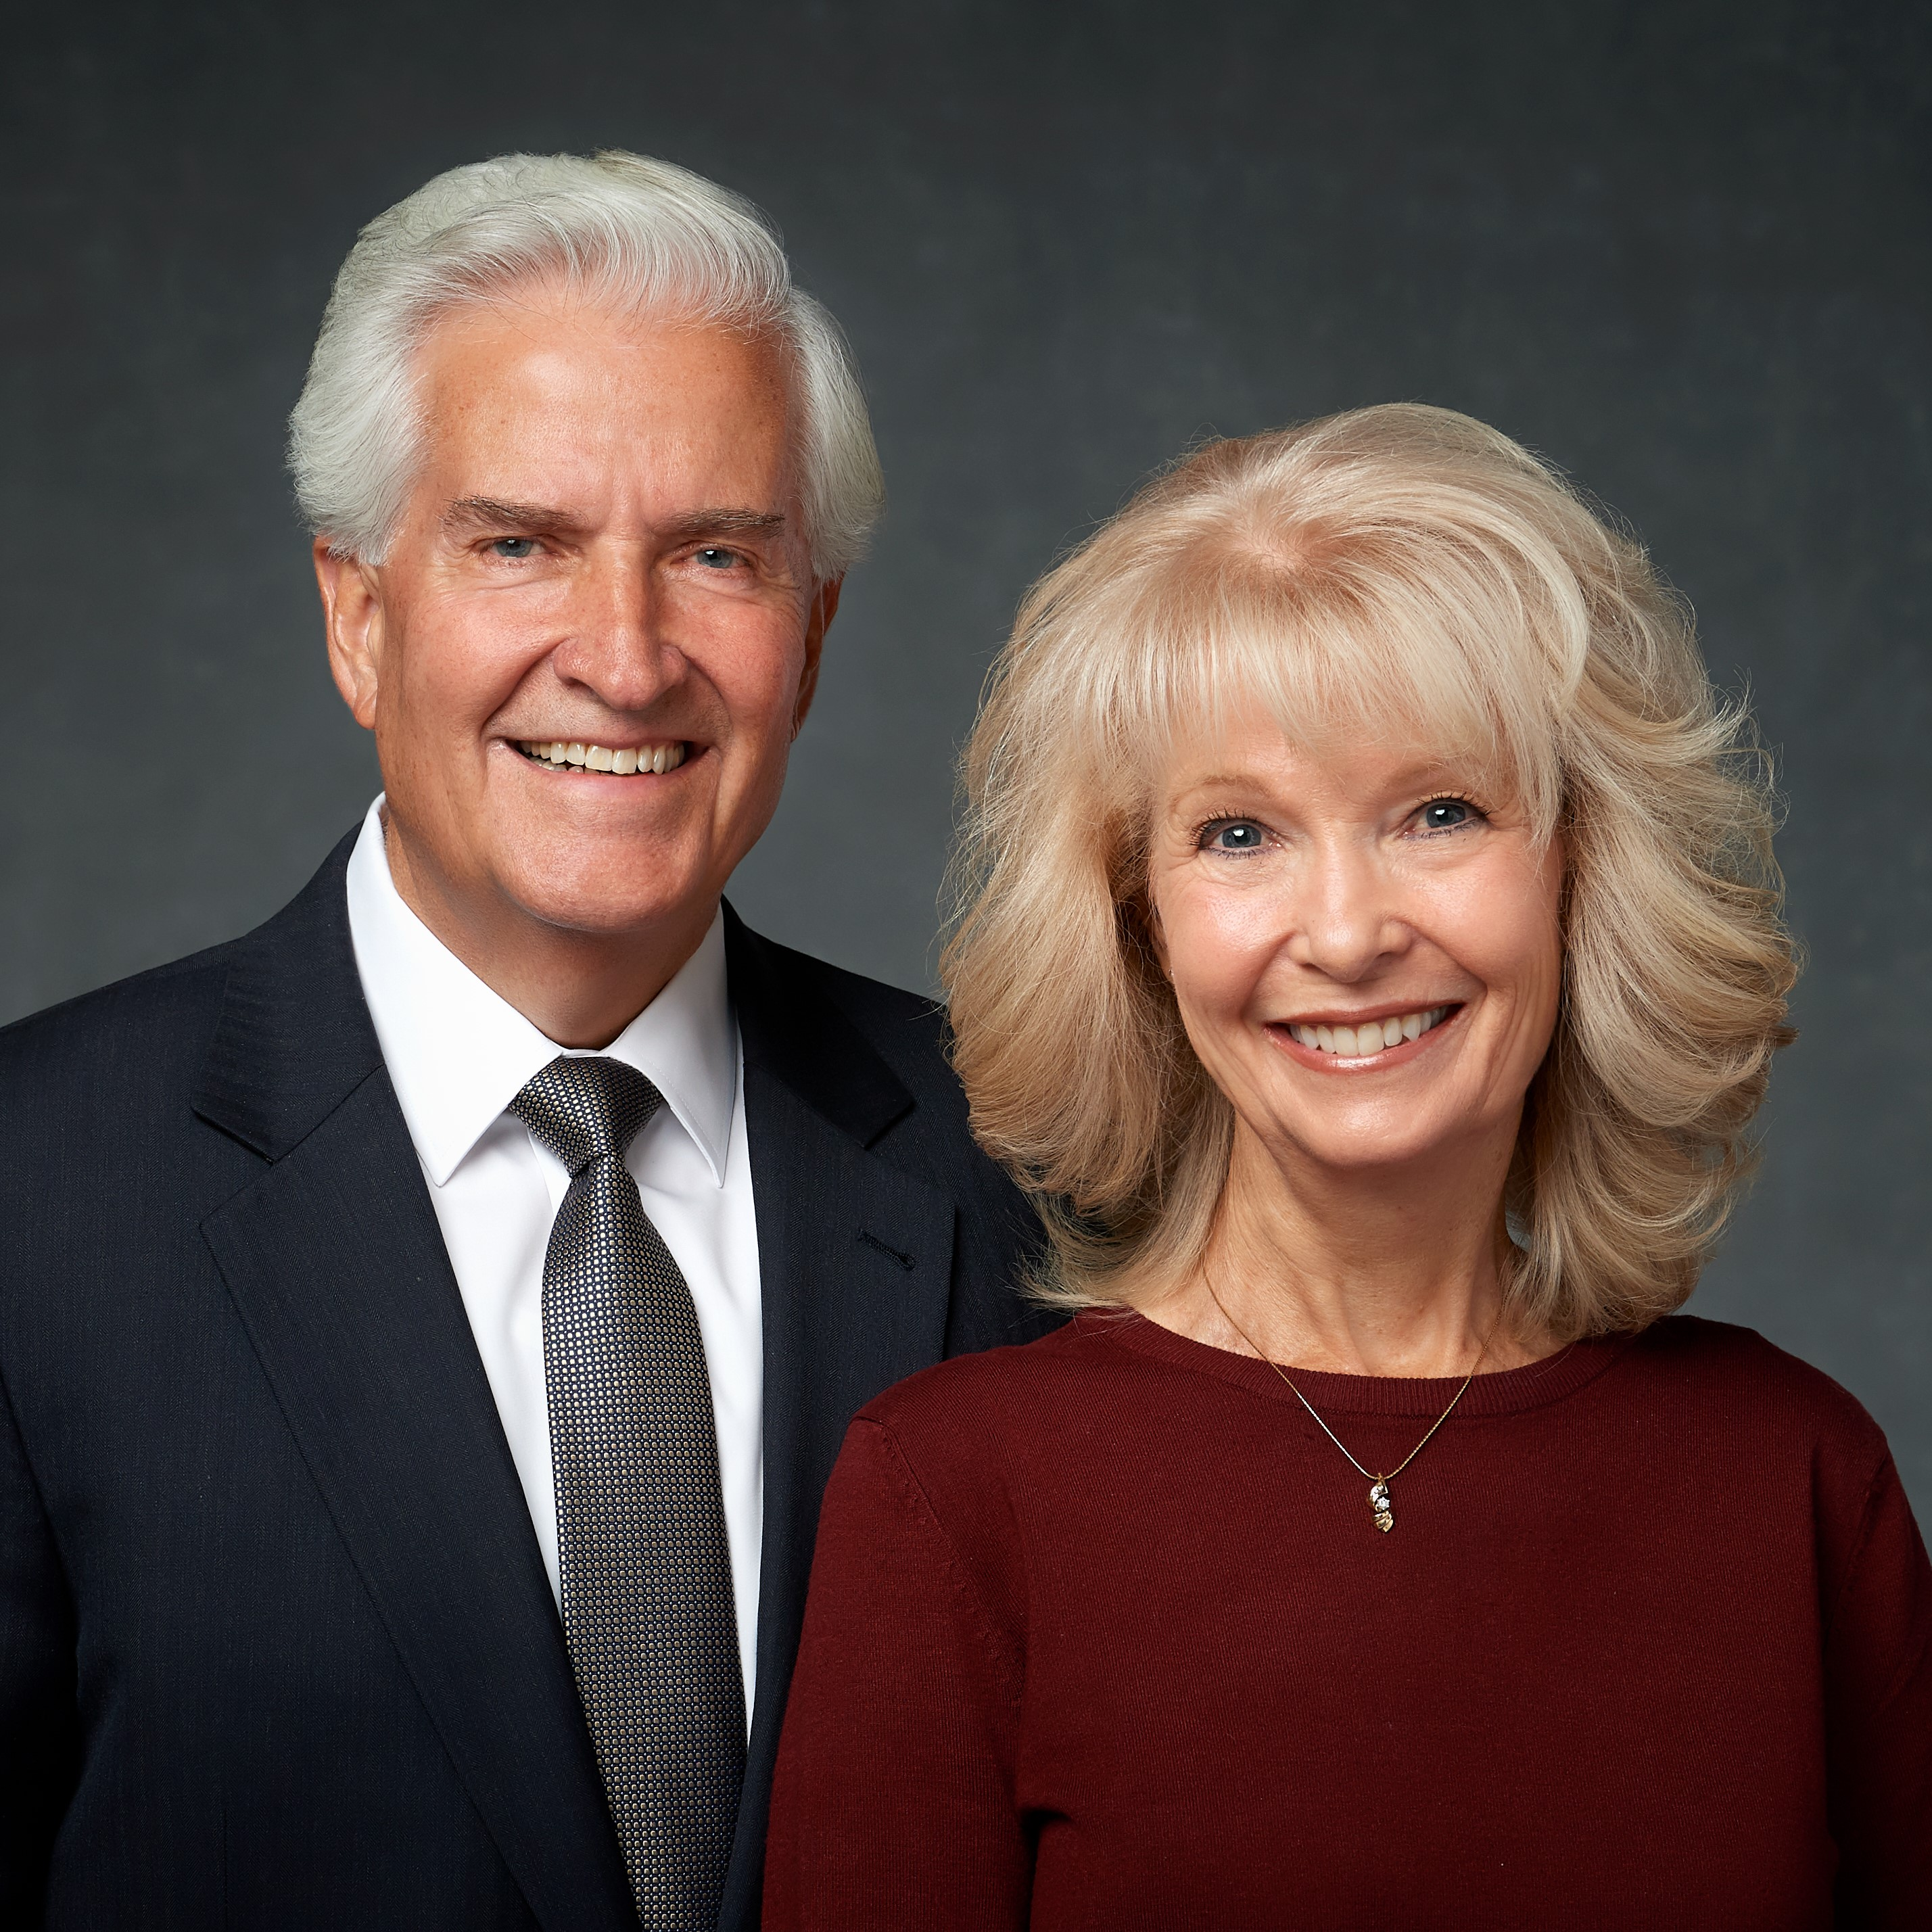 Larry K. and Laurie Beardall